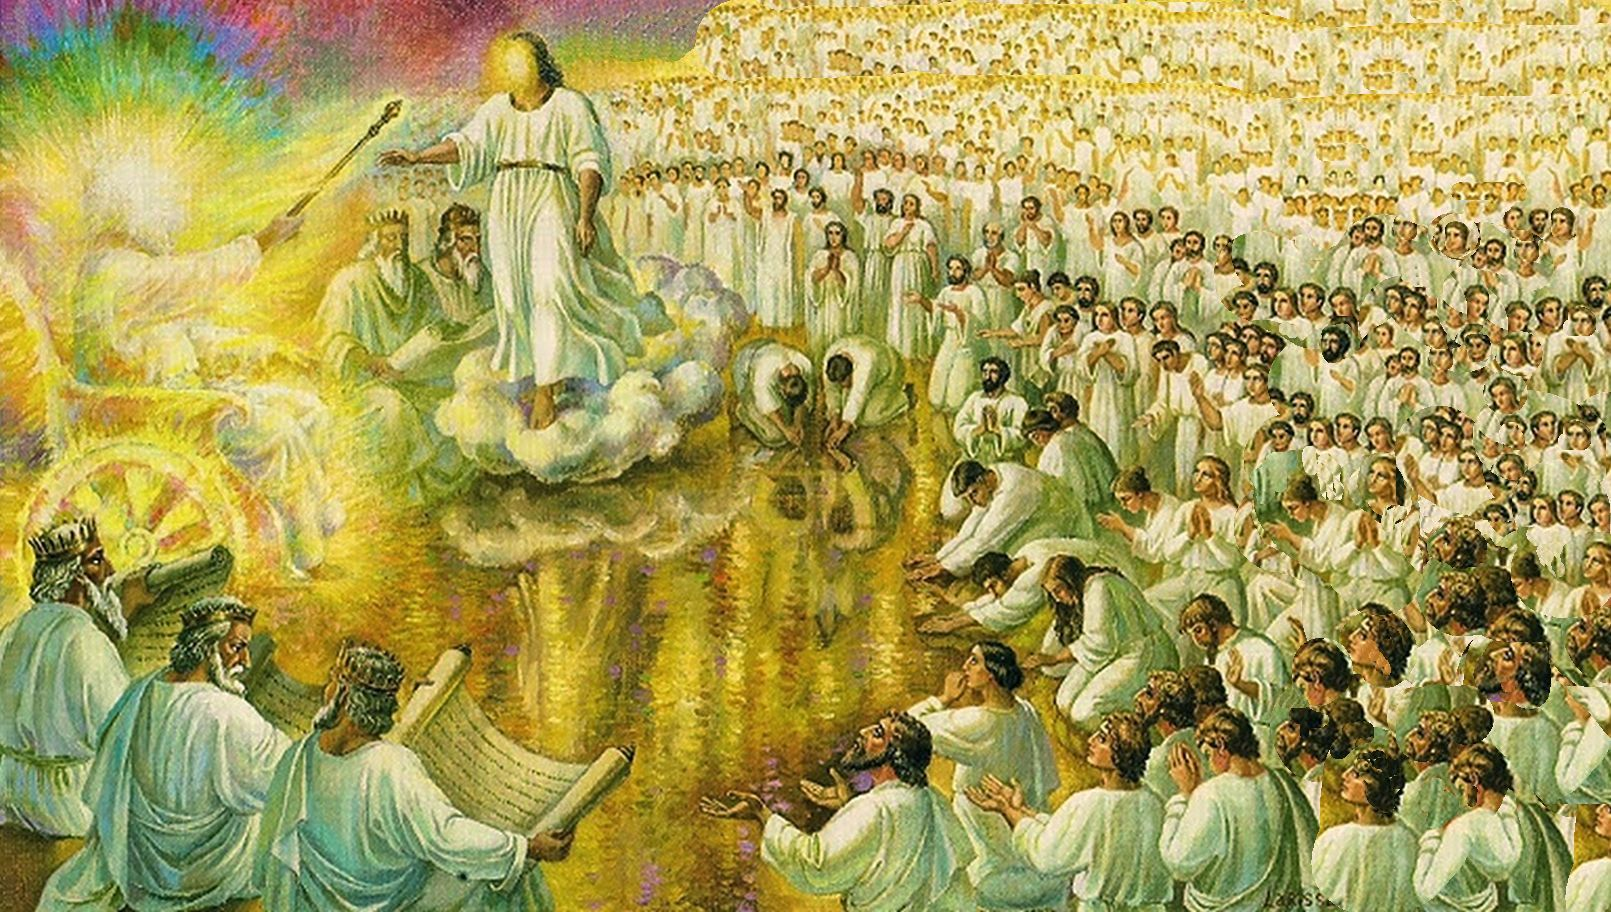 52 The lamb and the 144,000 standing before the throne Revelation